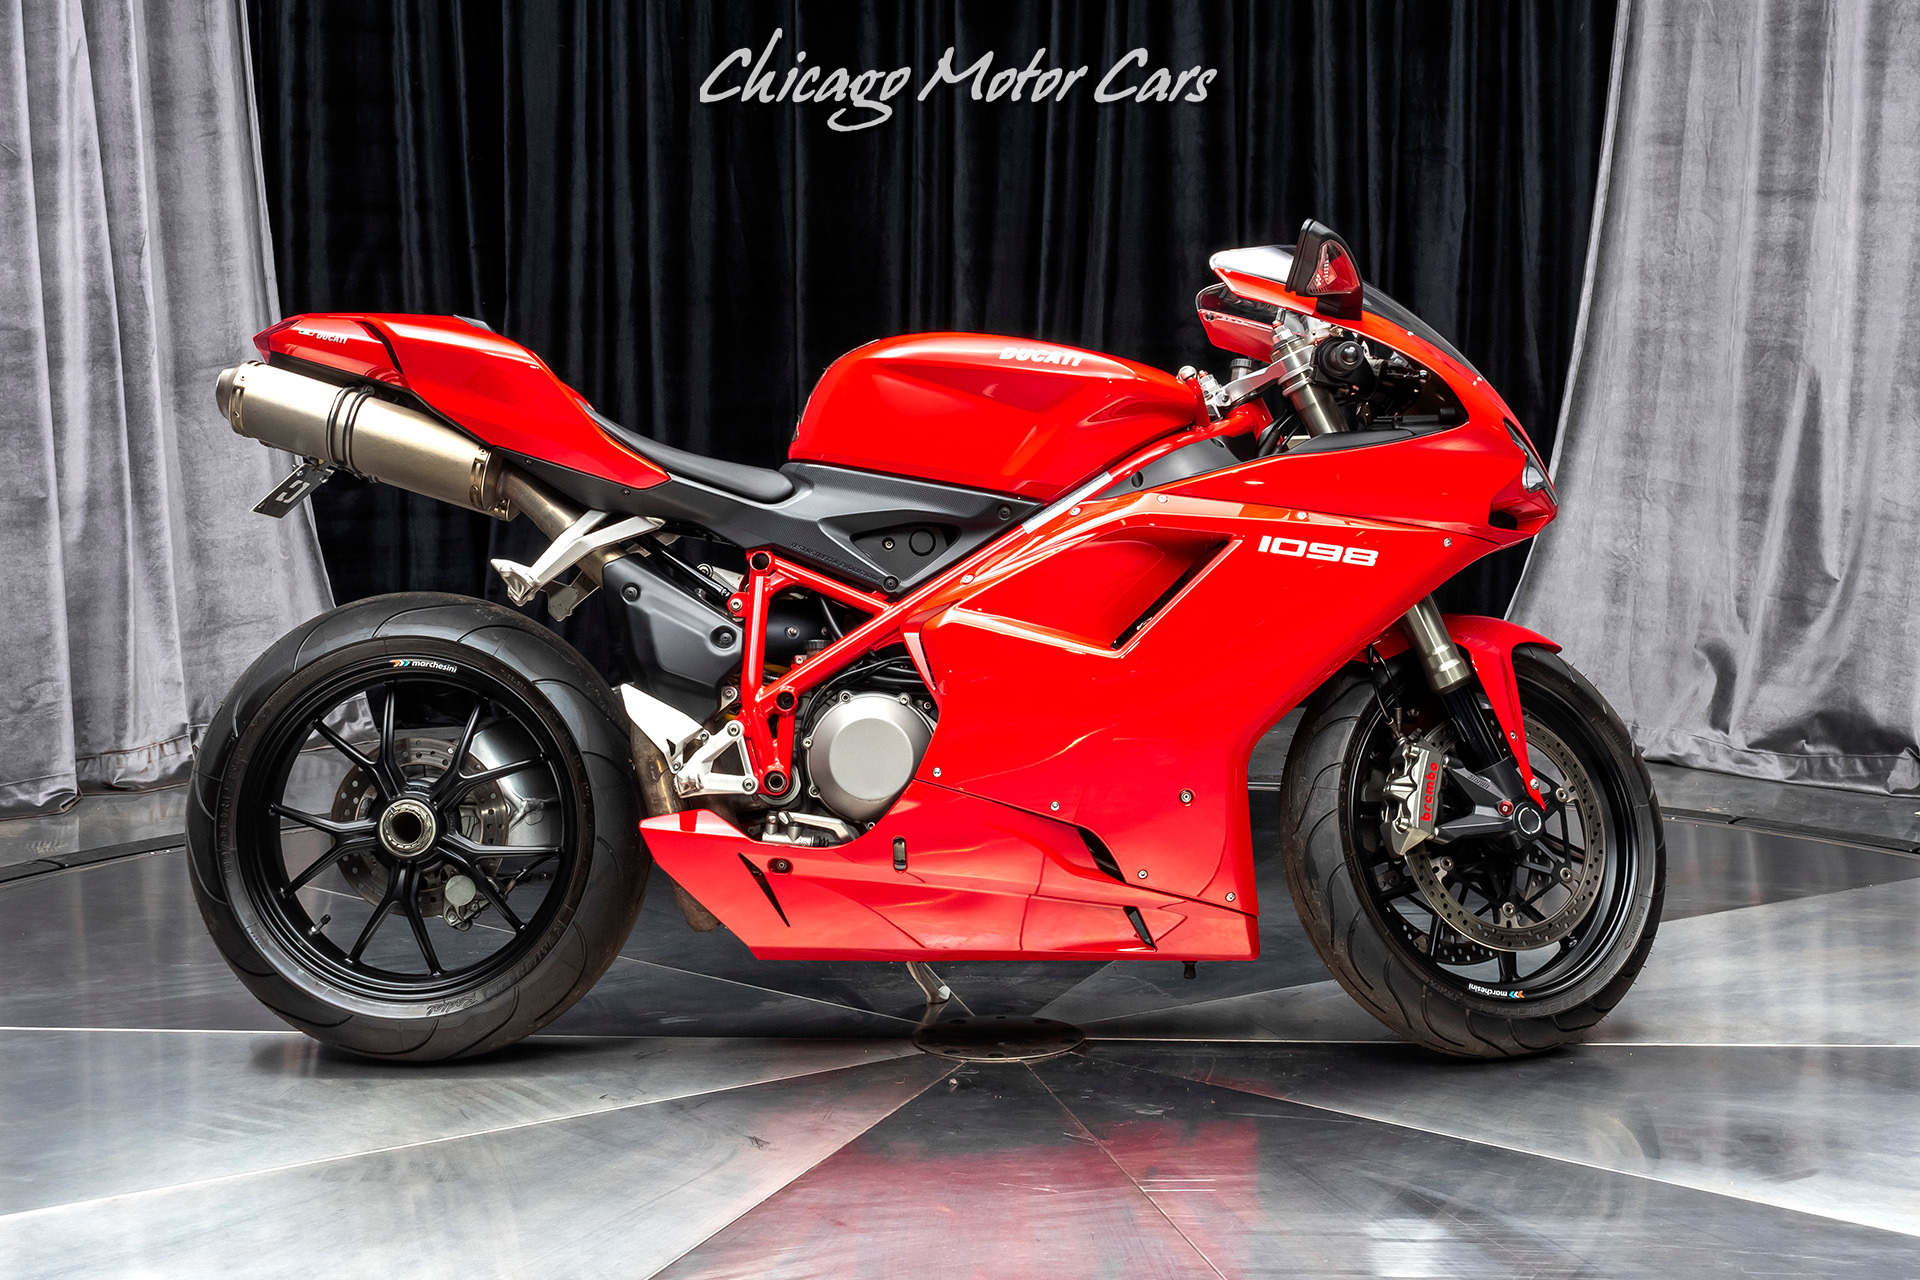 Used-2008-Ducati-SUPERBIKE-1098-Motorcycle-Excellent-Condition-134-HORSEPOWER